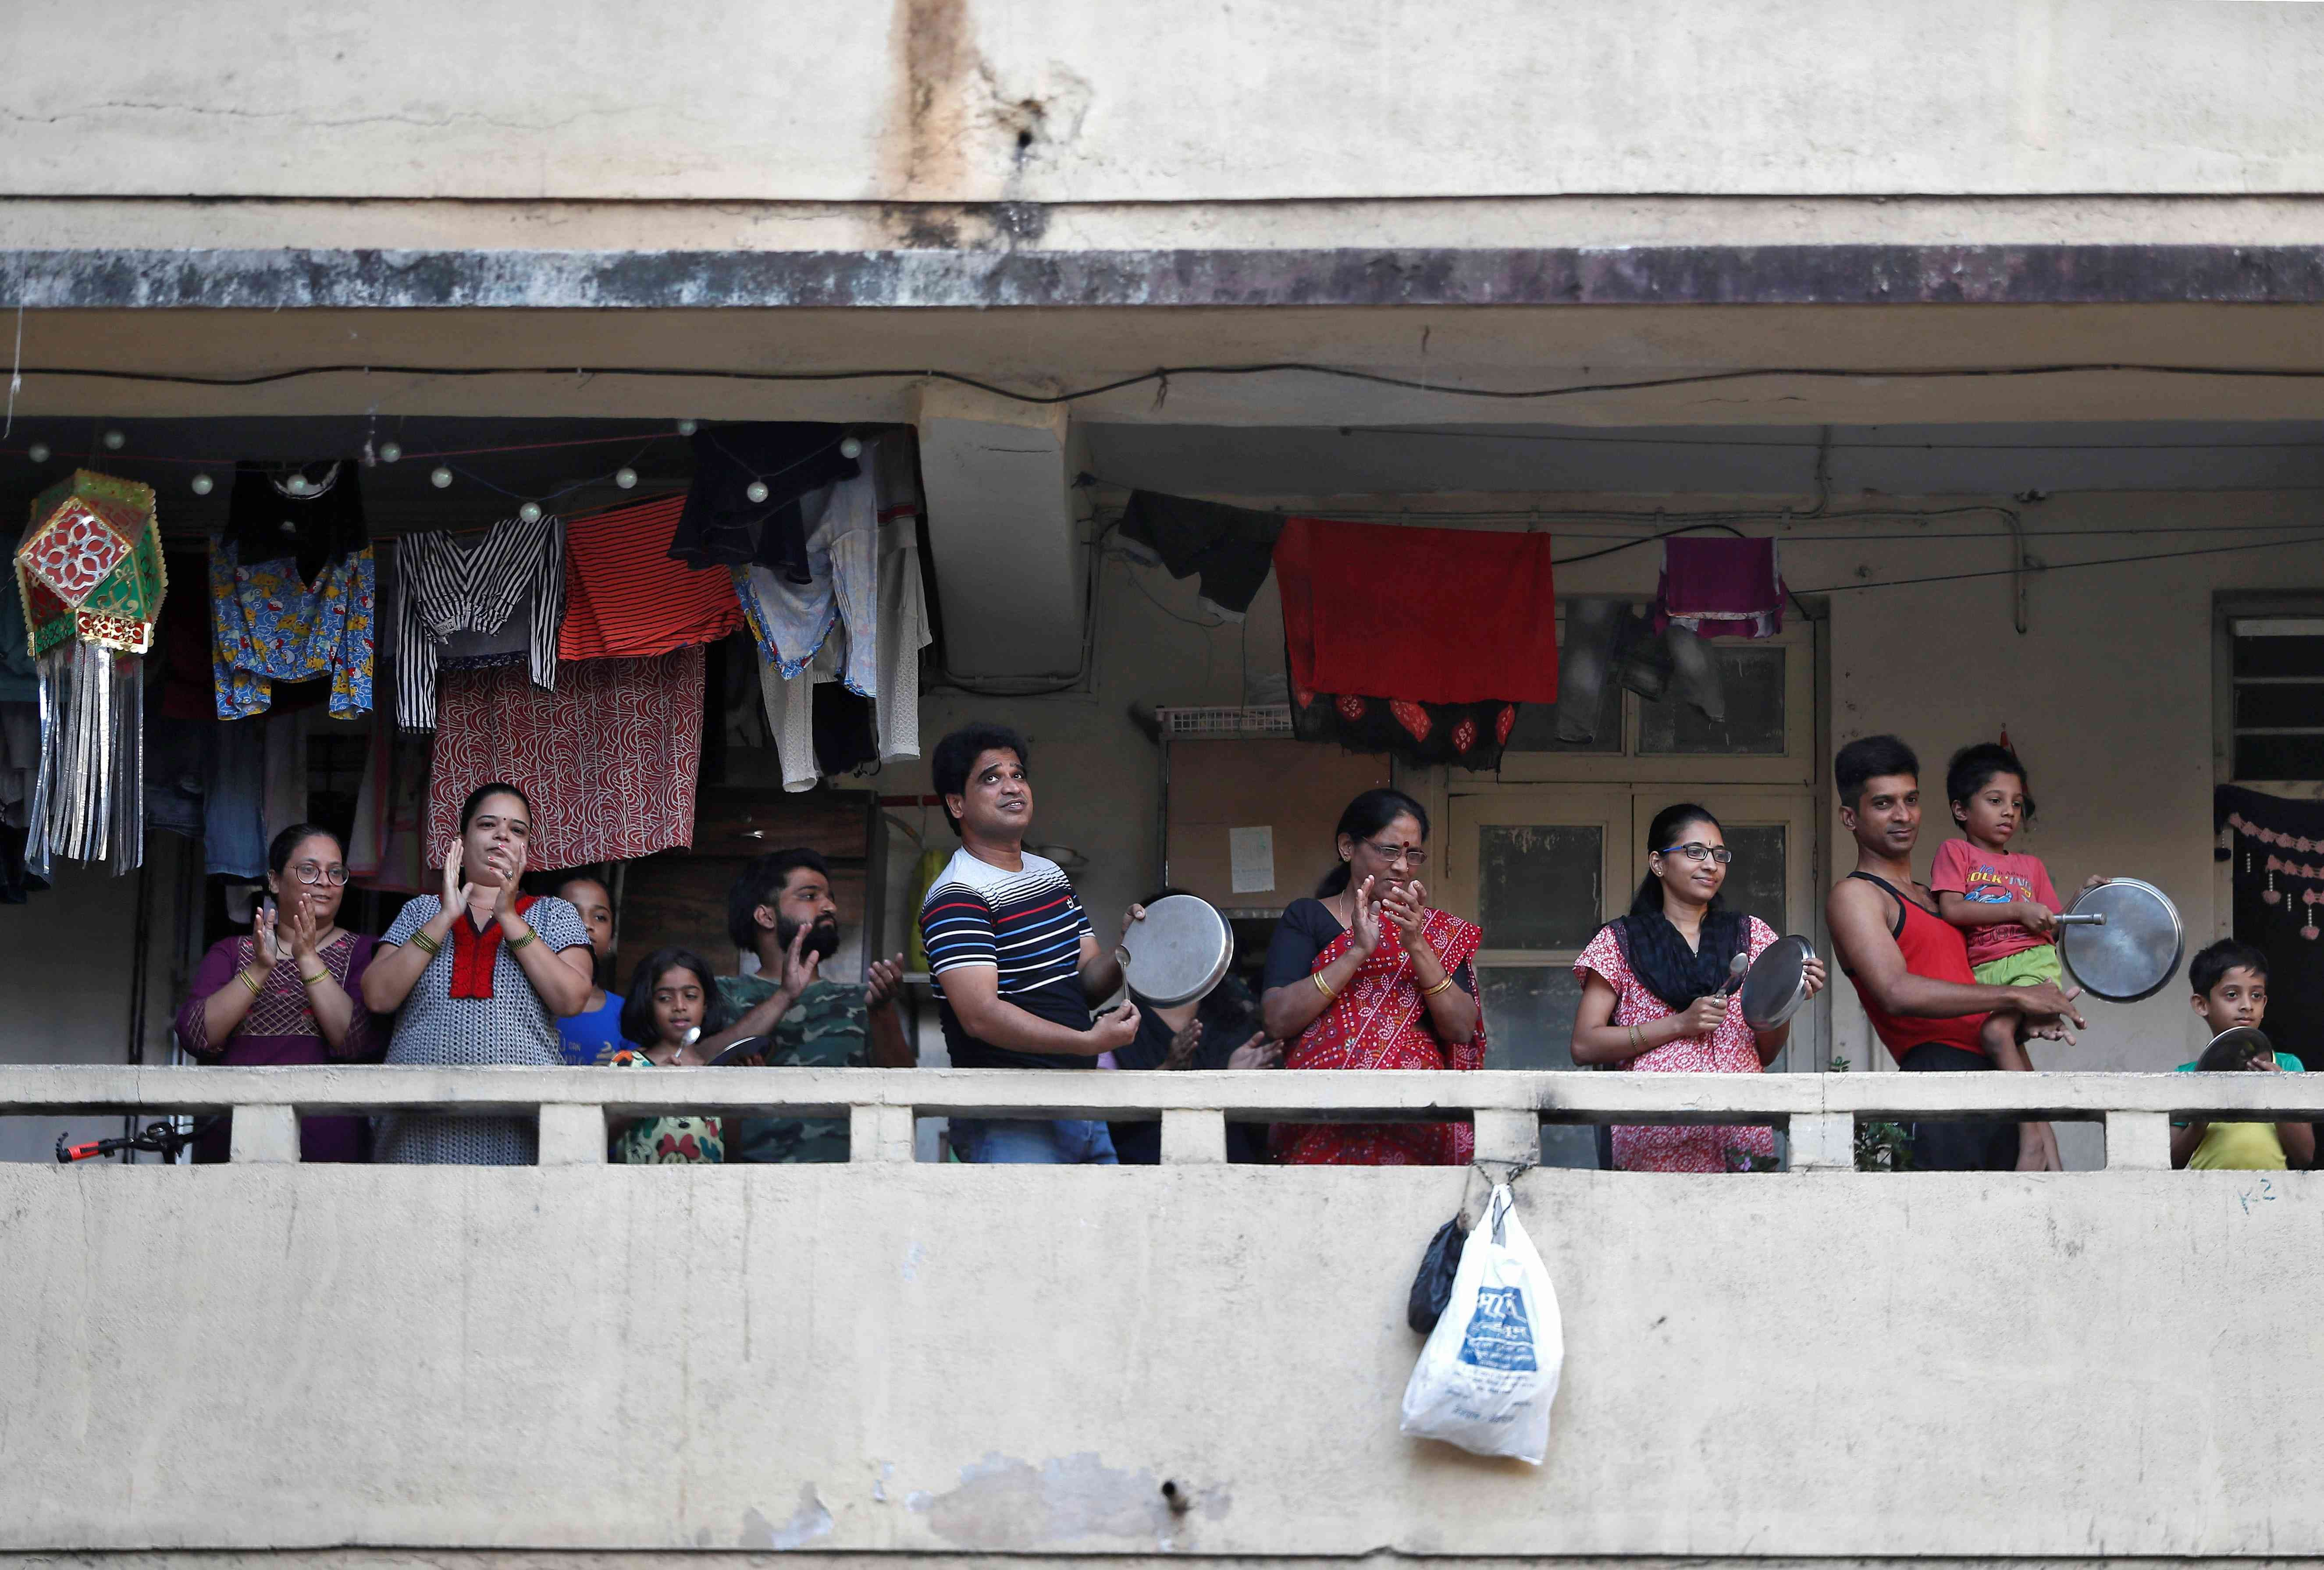 Mumbai residents clap and bang utensils from their balconies on March 22 to cheer for emergency personnel and sanitation workers who are on the frontlines in the fight against coronavirus. — Reuters